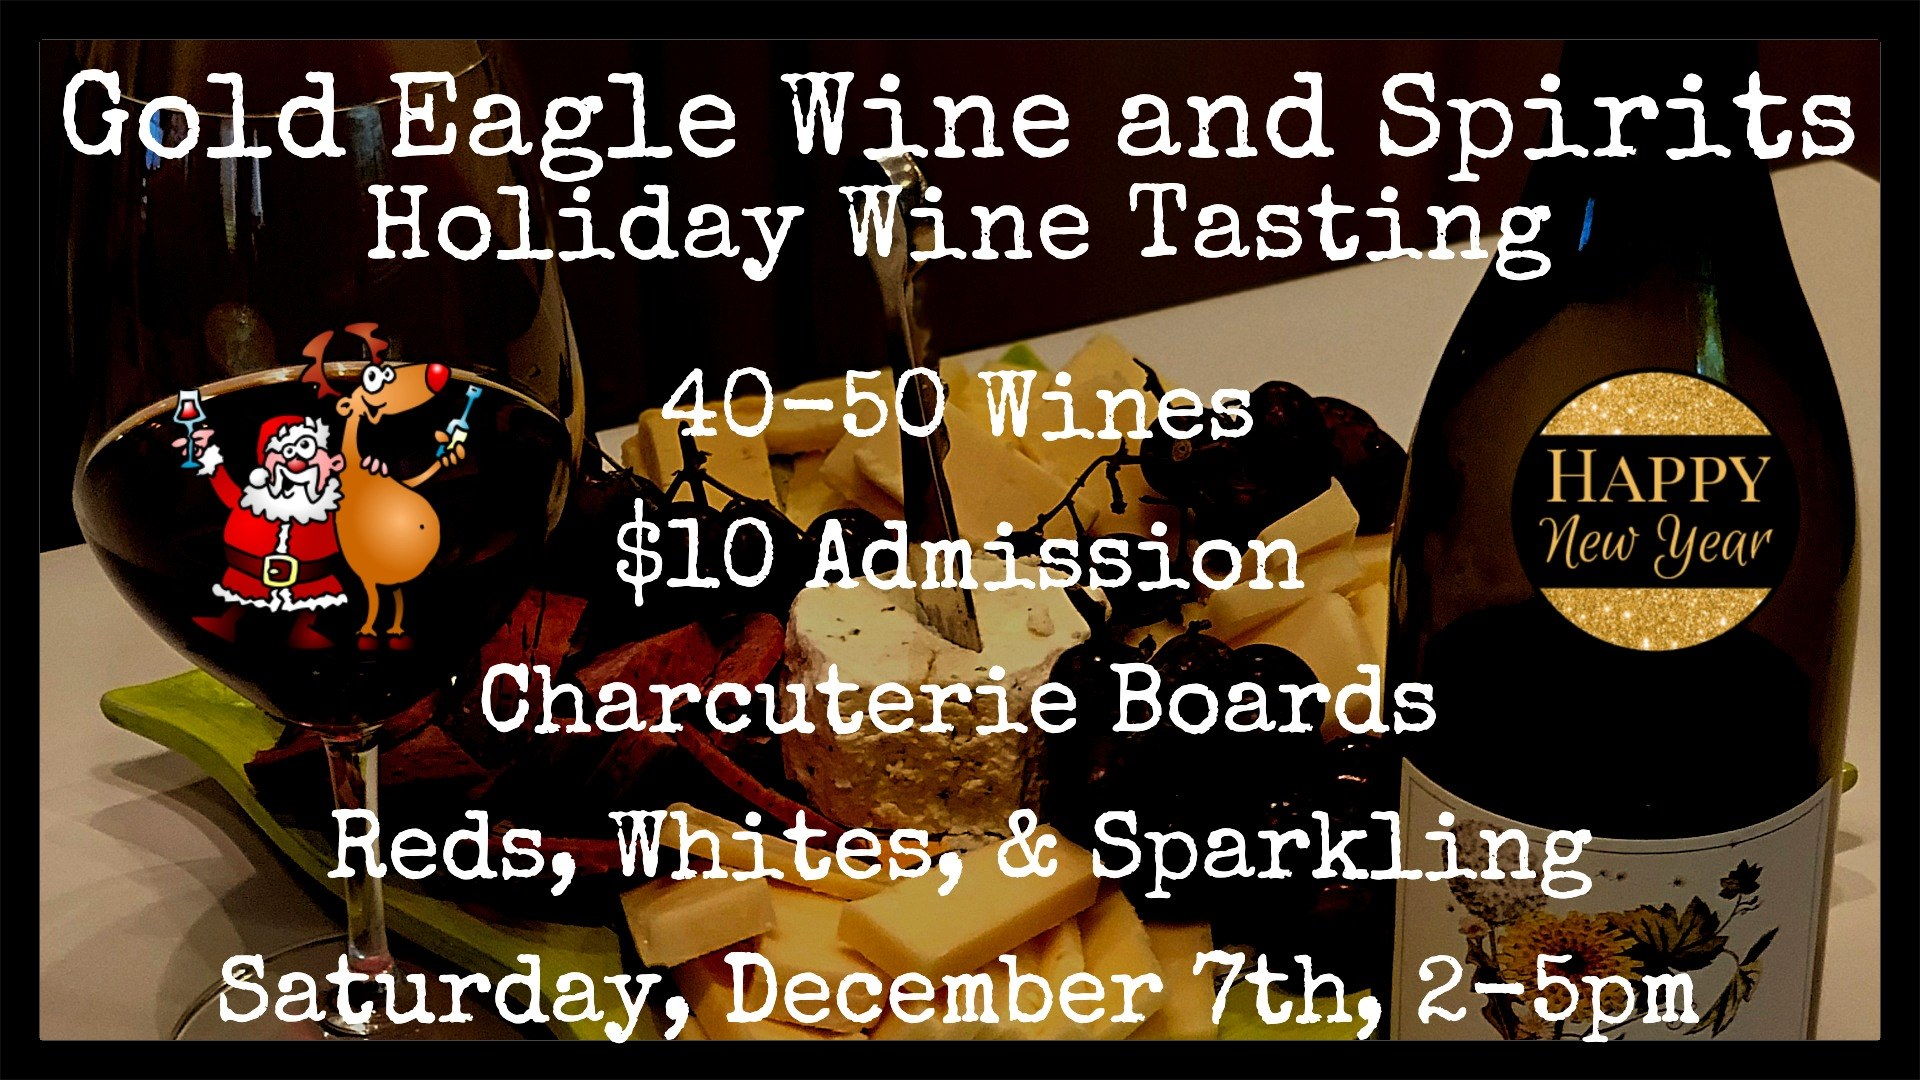 Gold Eagle Holiday Wine Tasting in Libertyville